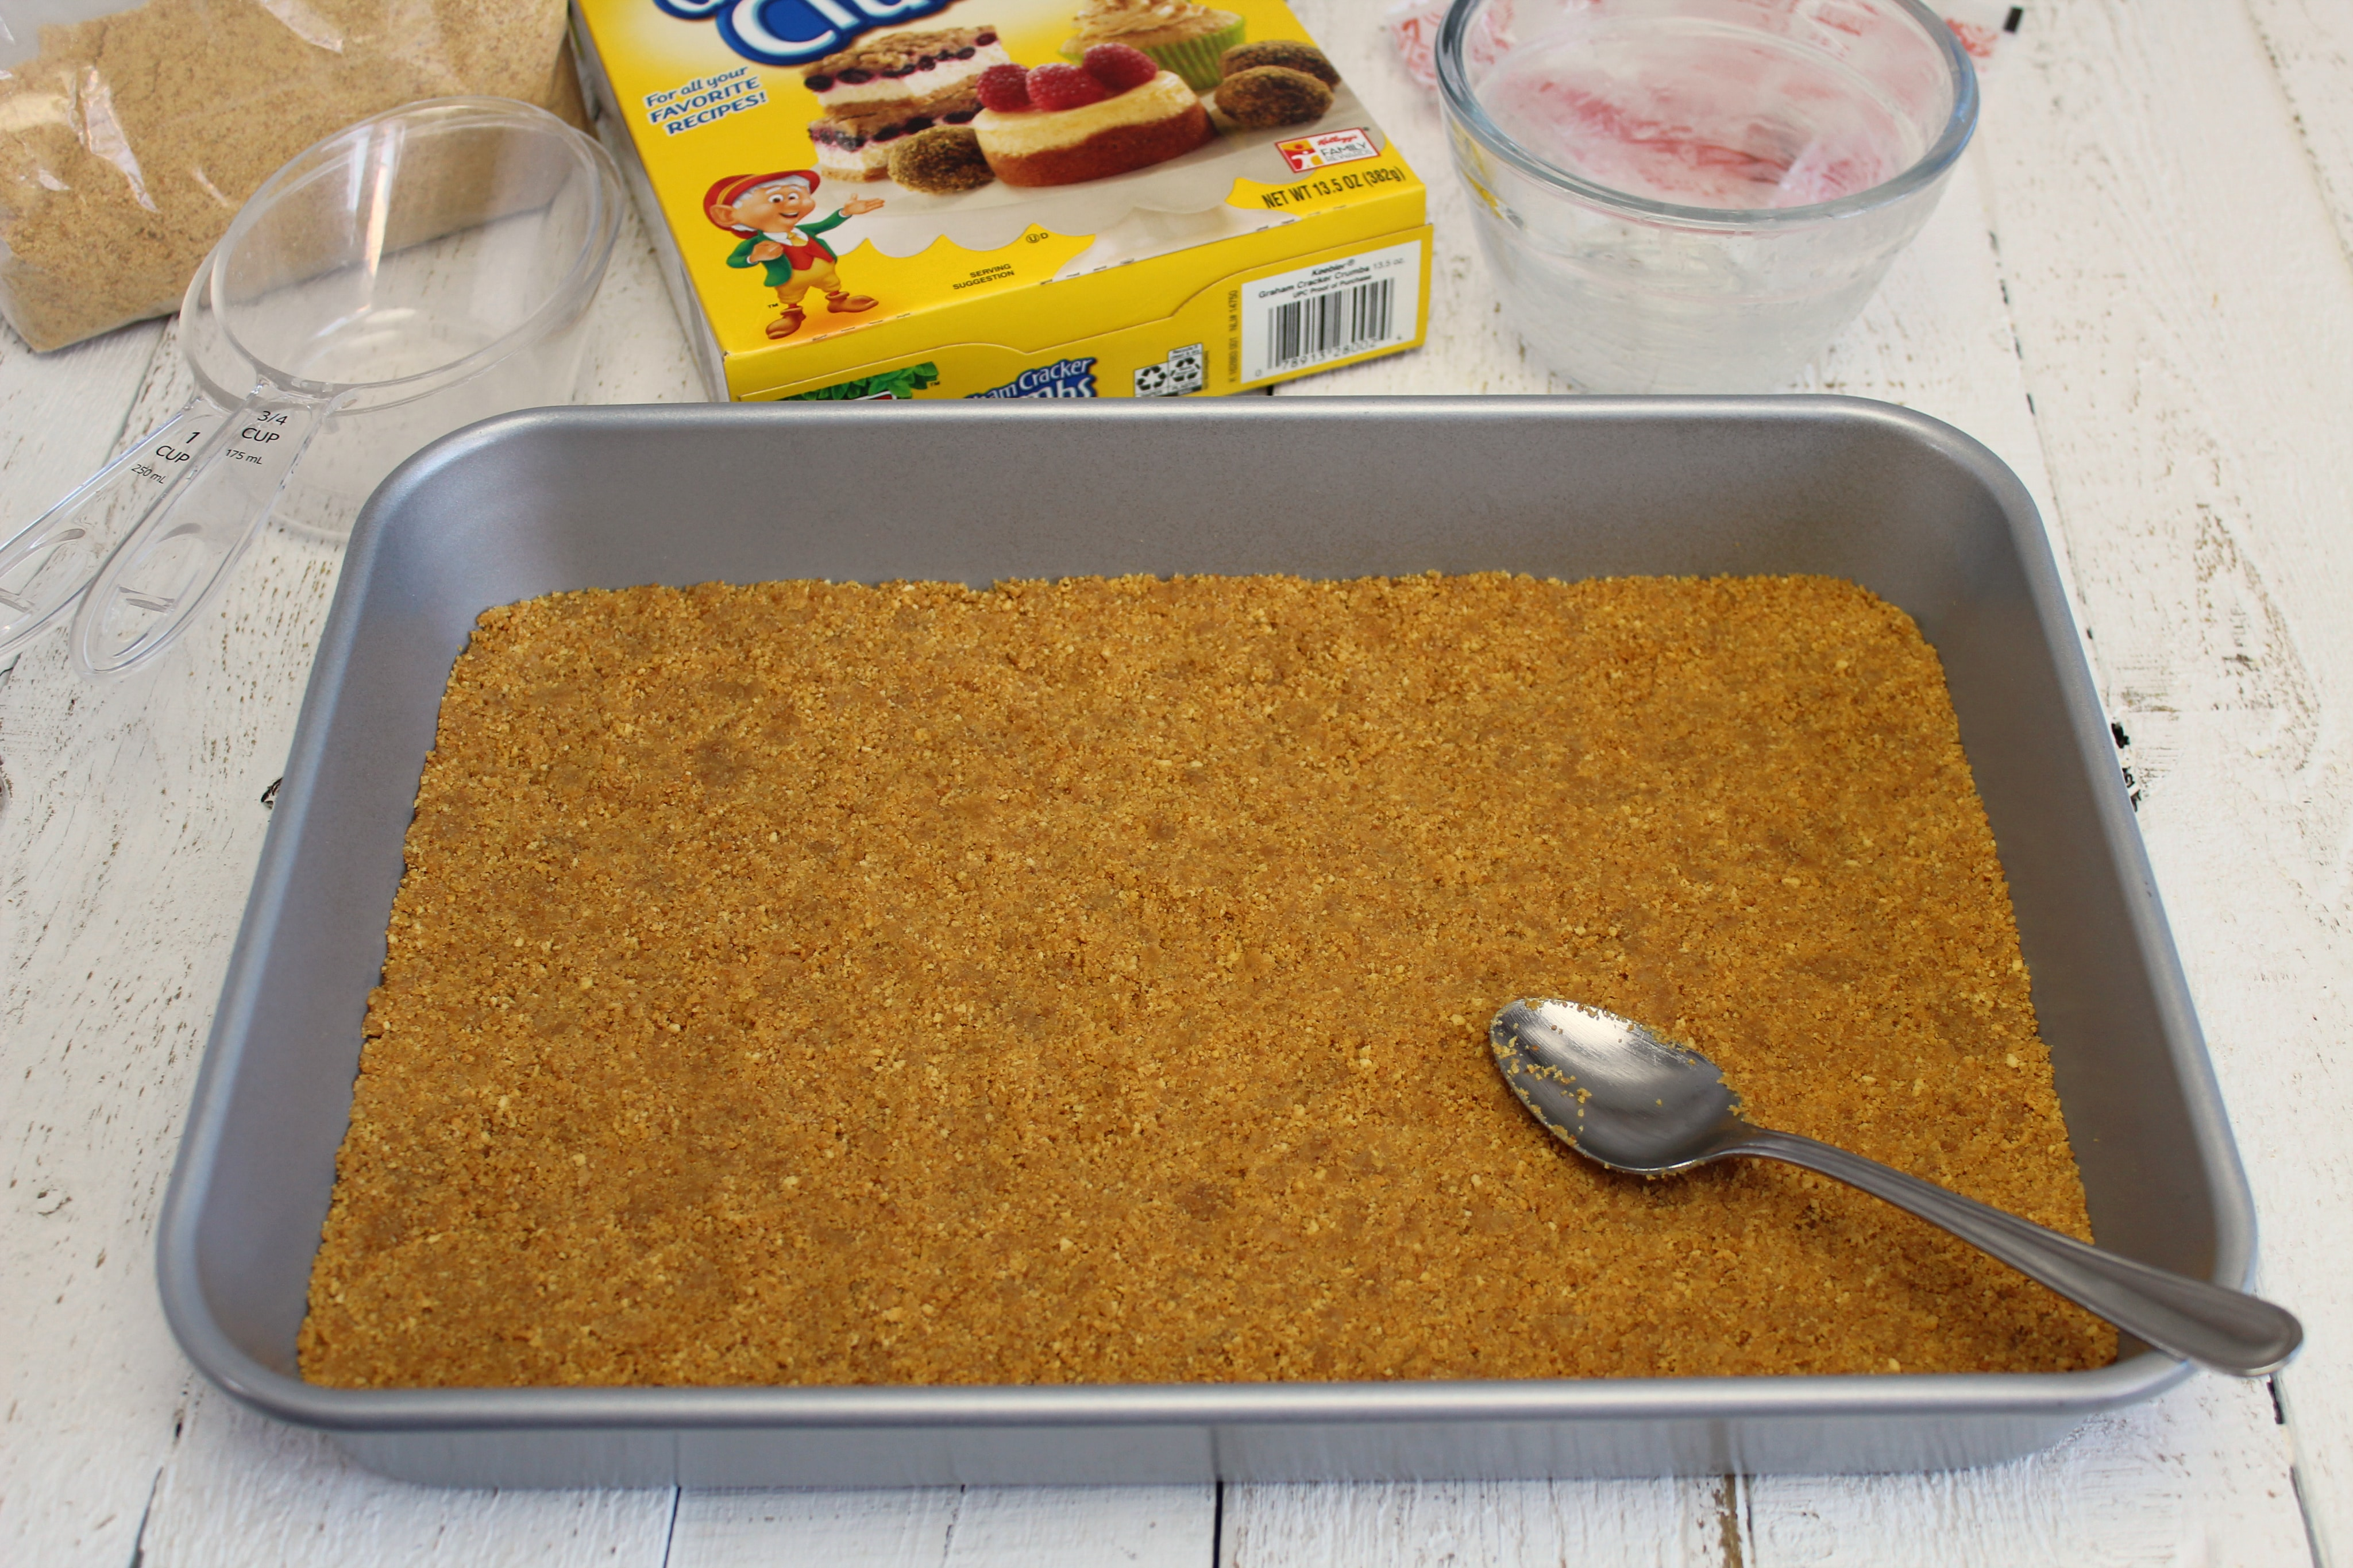 Spread graham cracker crumbs evenly on bottom of pan using a spoon.